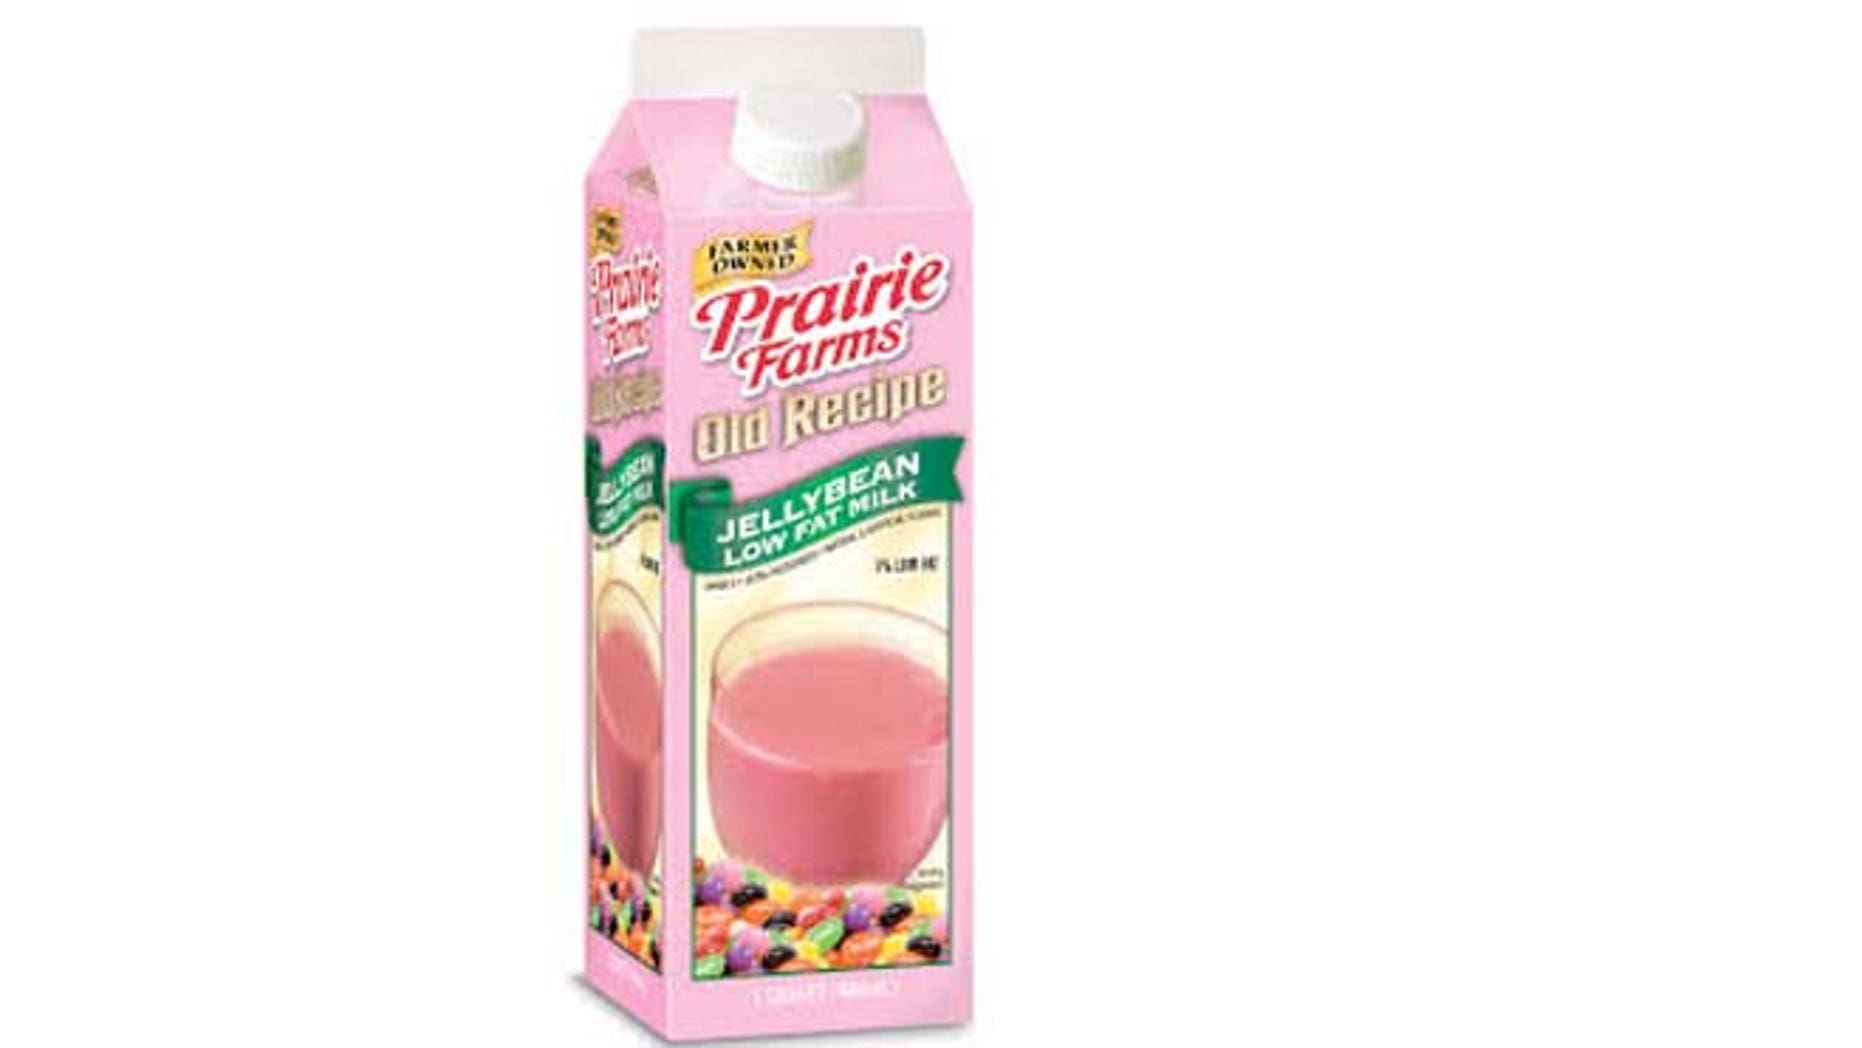 Prairie Farms Dairy has a new milk flavored like jellybeans for Easter.